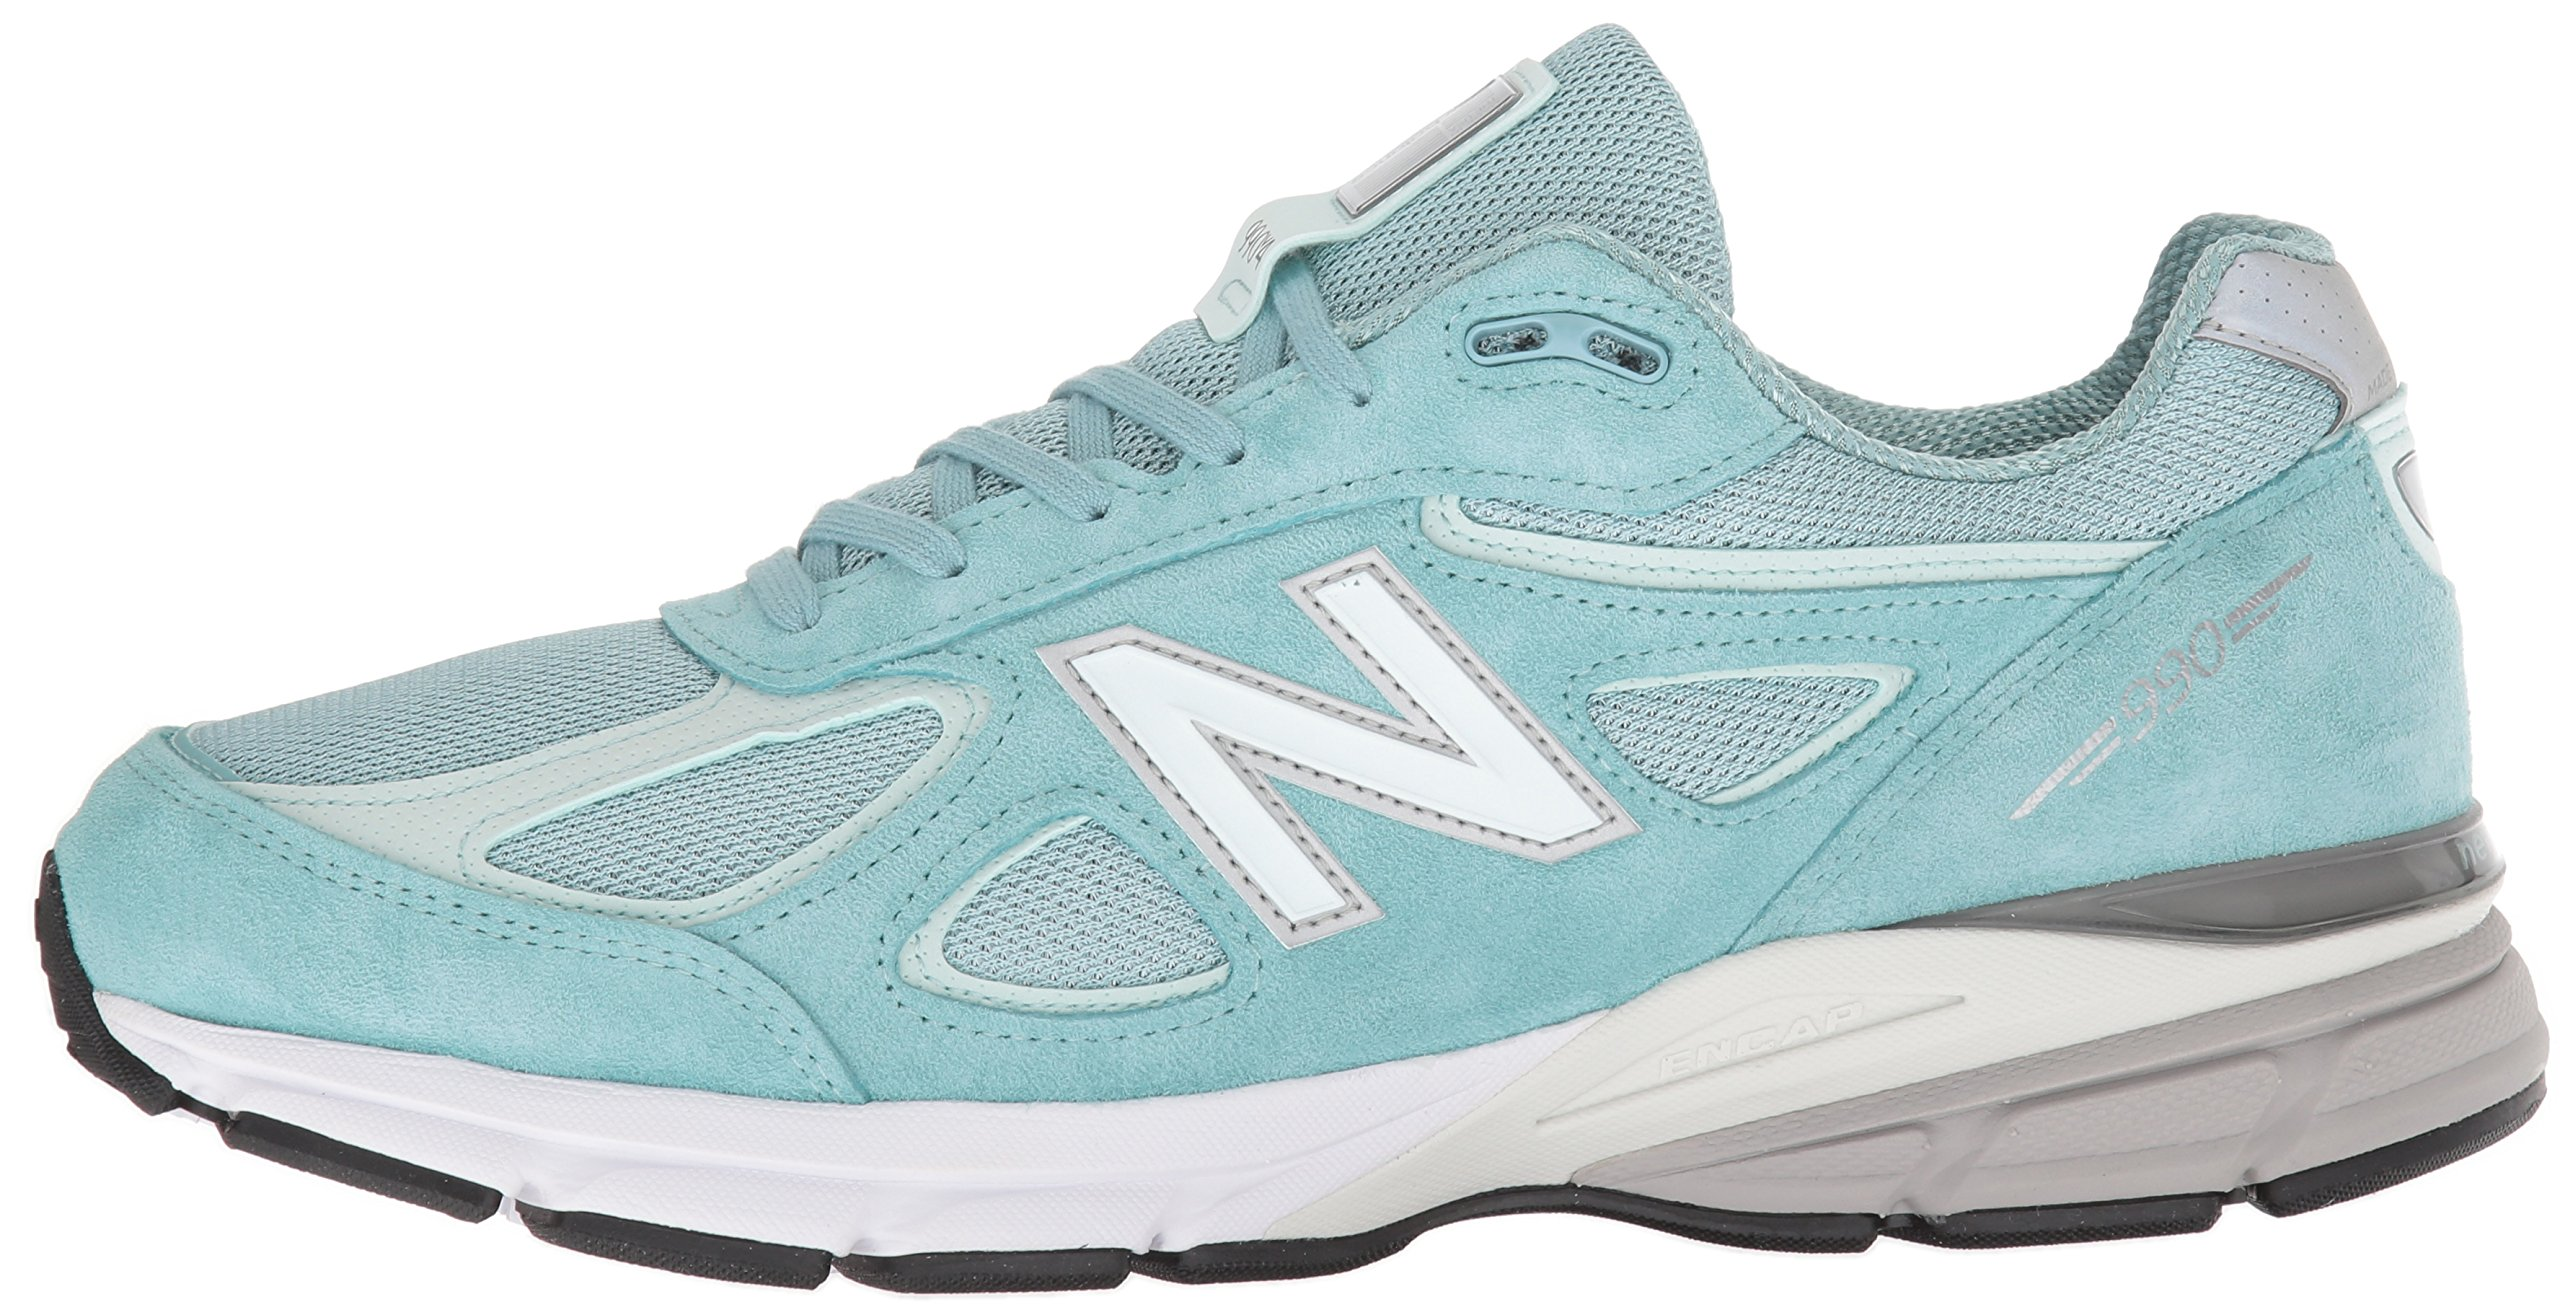 New Balance Men's 990v4, Green/White, 7 D US by New Balance (Image #5)